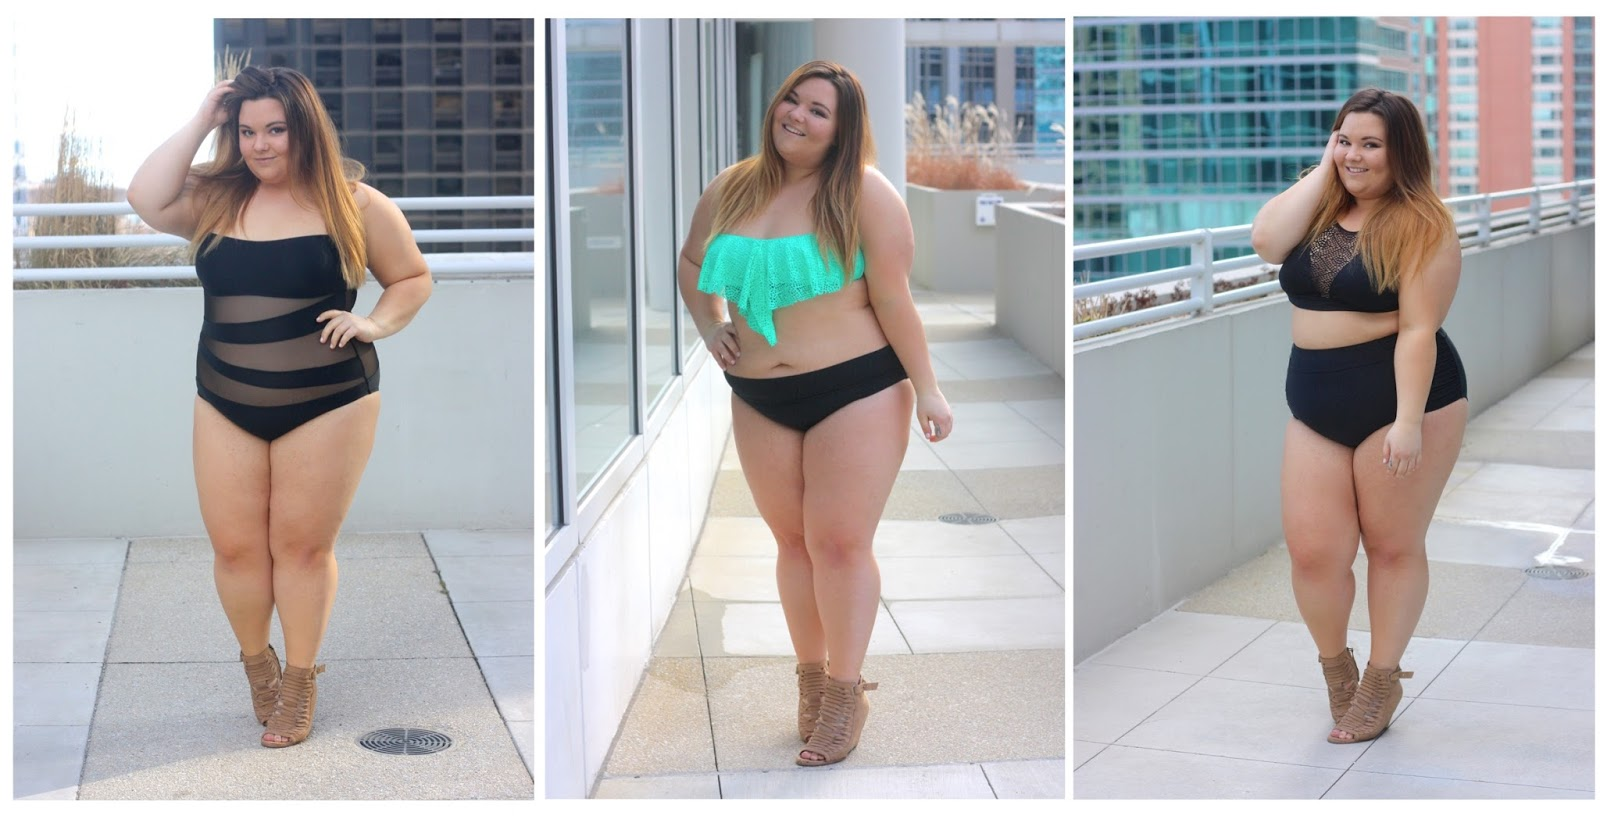 plus size bikini, plus size fashion, target style, target swim 2016, #NOFOMO, no fear of missing out, plus size swim suits, swim suits for all, curvy girl in swim suit, embrace your curves, psfashion, eff your beauty standards, natalie craig, natalie in the city, target, high waist swim suit